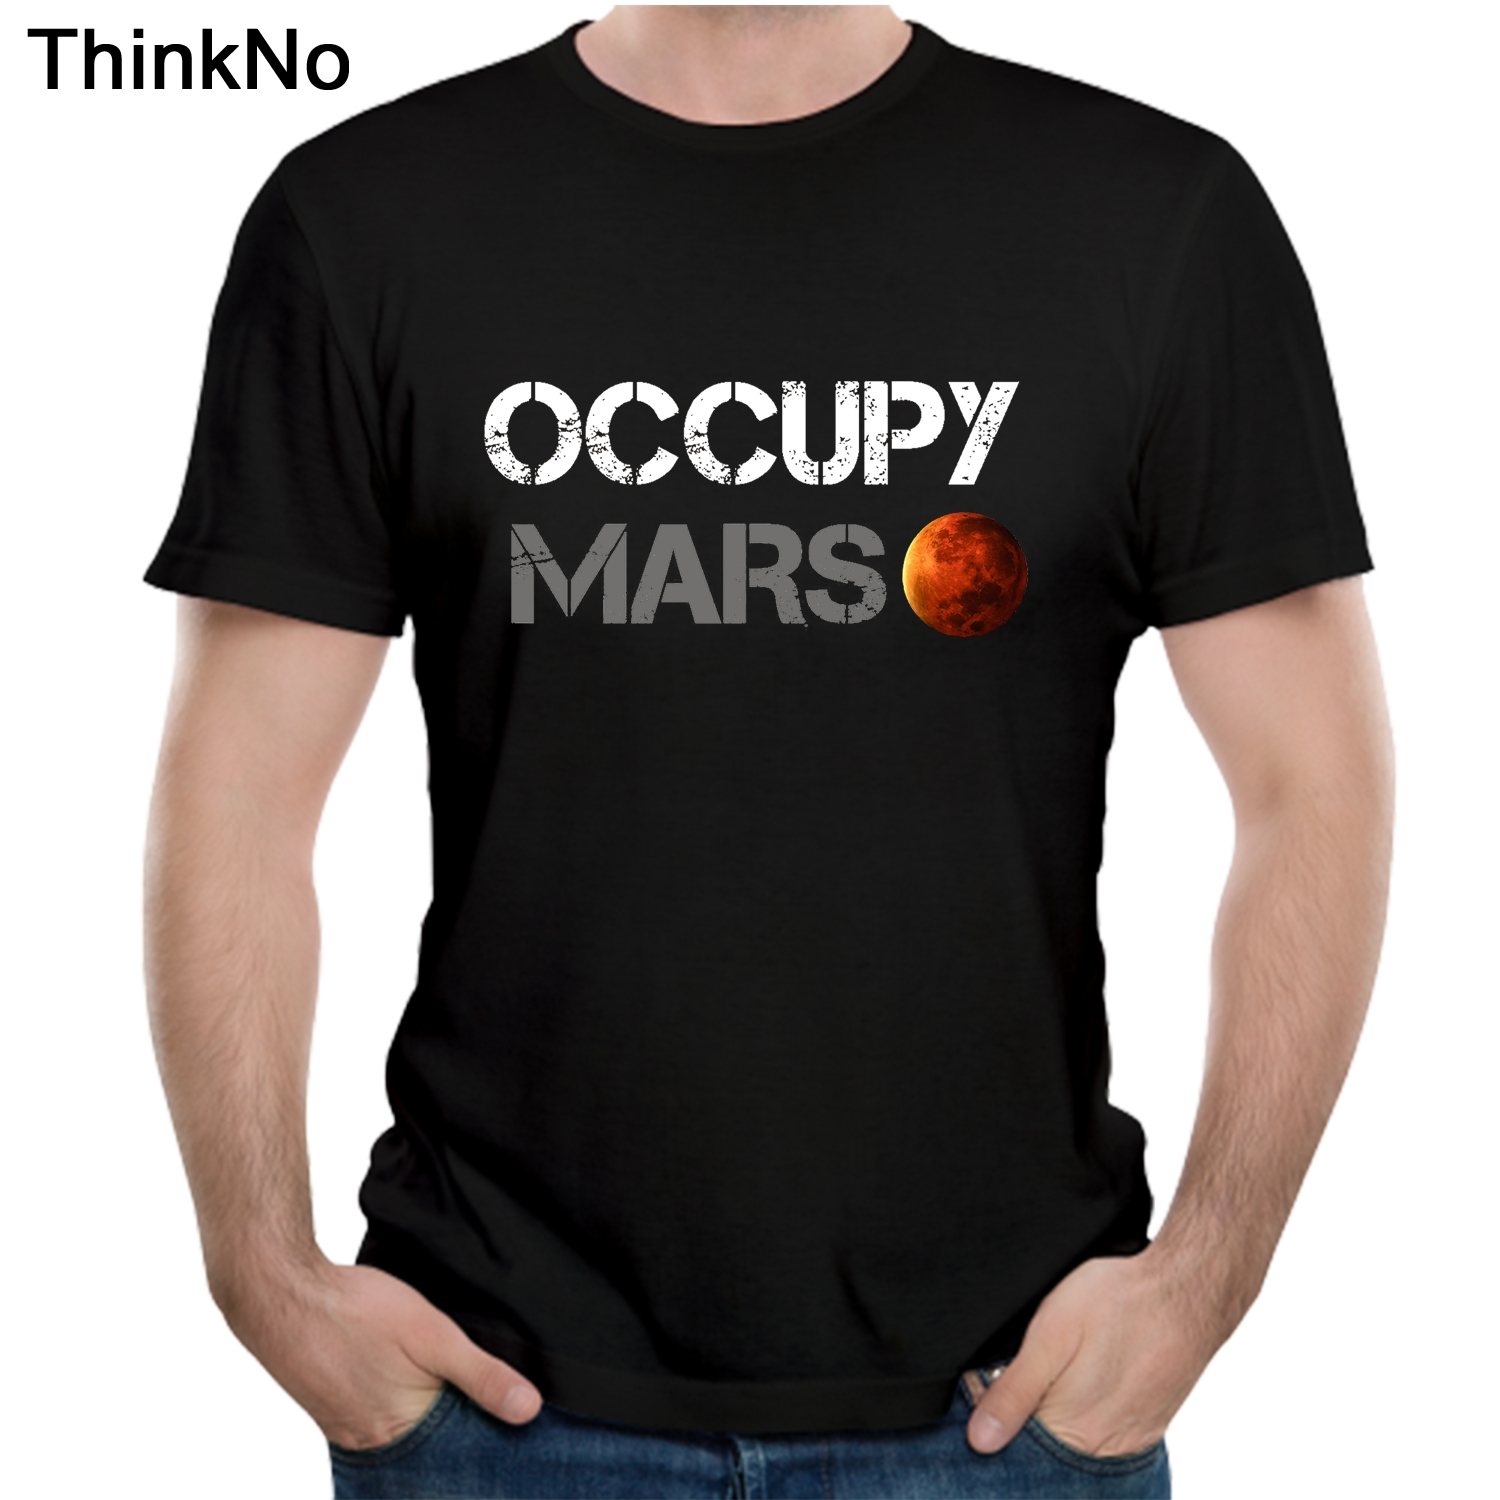 Space X   T     shirt   Tesla Tees Casual Top design Popualr Occupy Mars 100% Cotton Tee   SHIRT